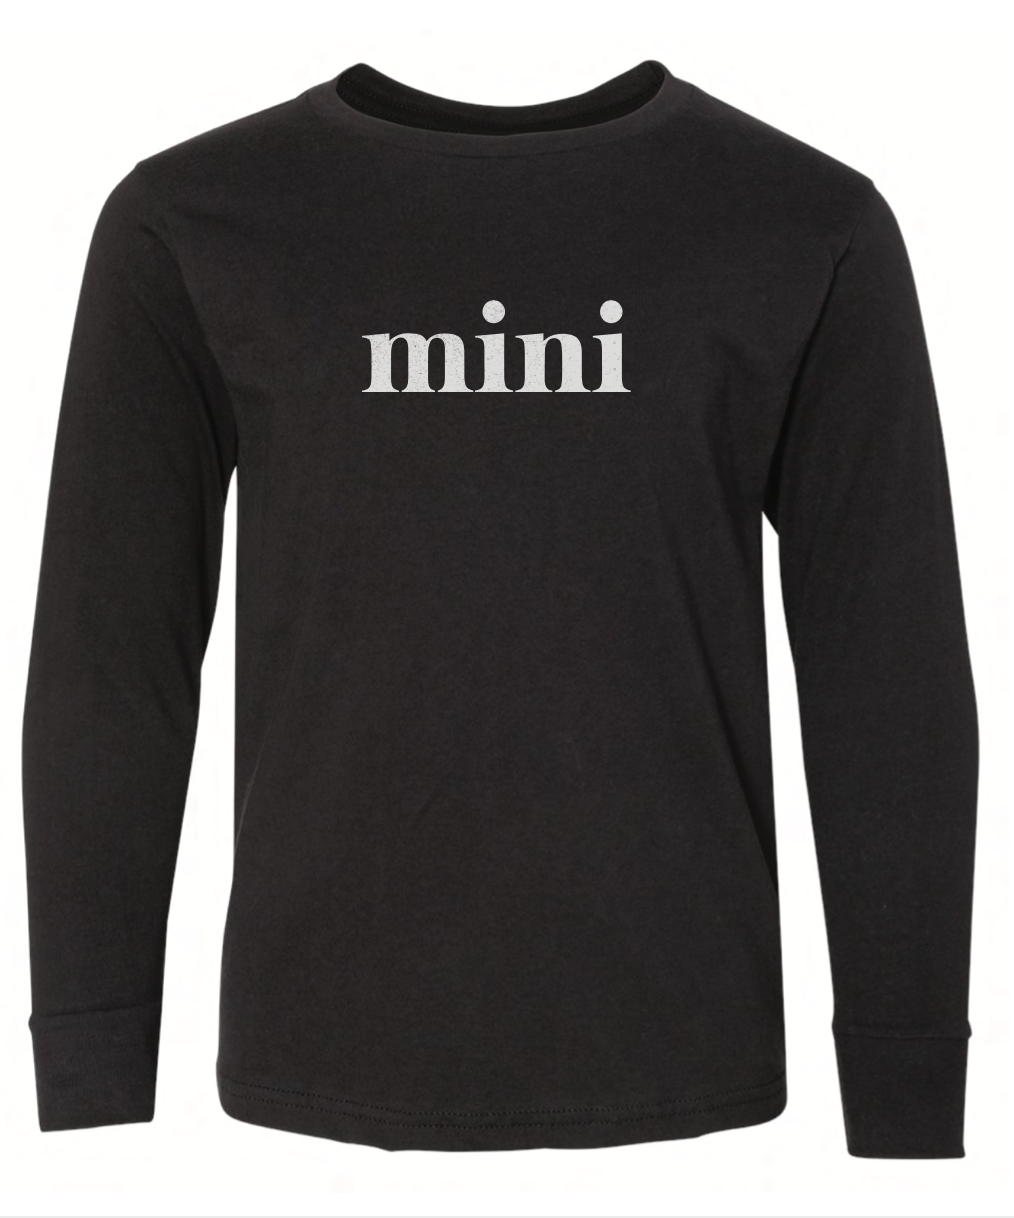 Mini Sweatshirt - Black